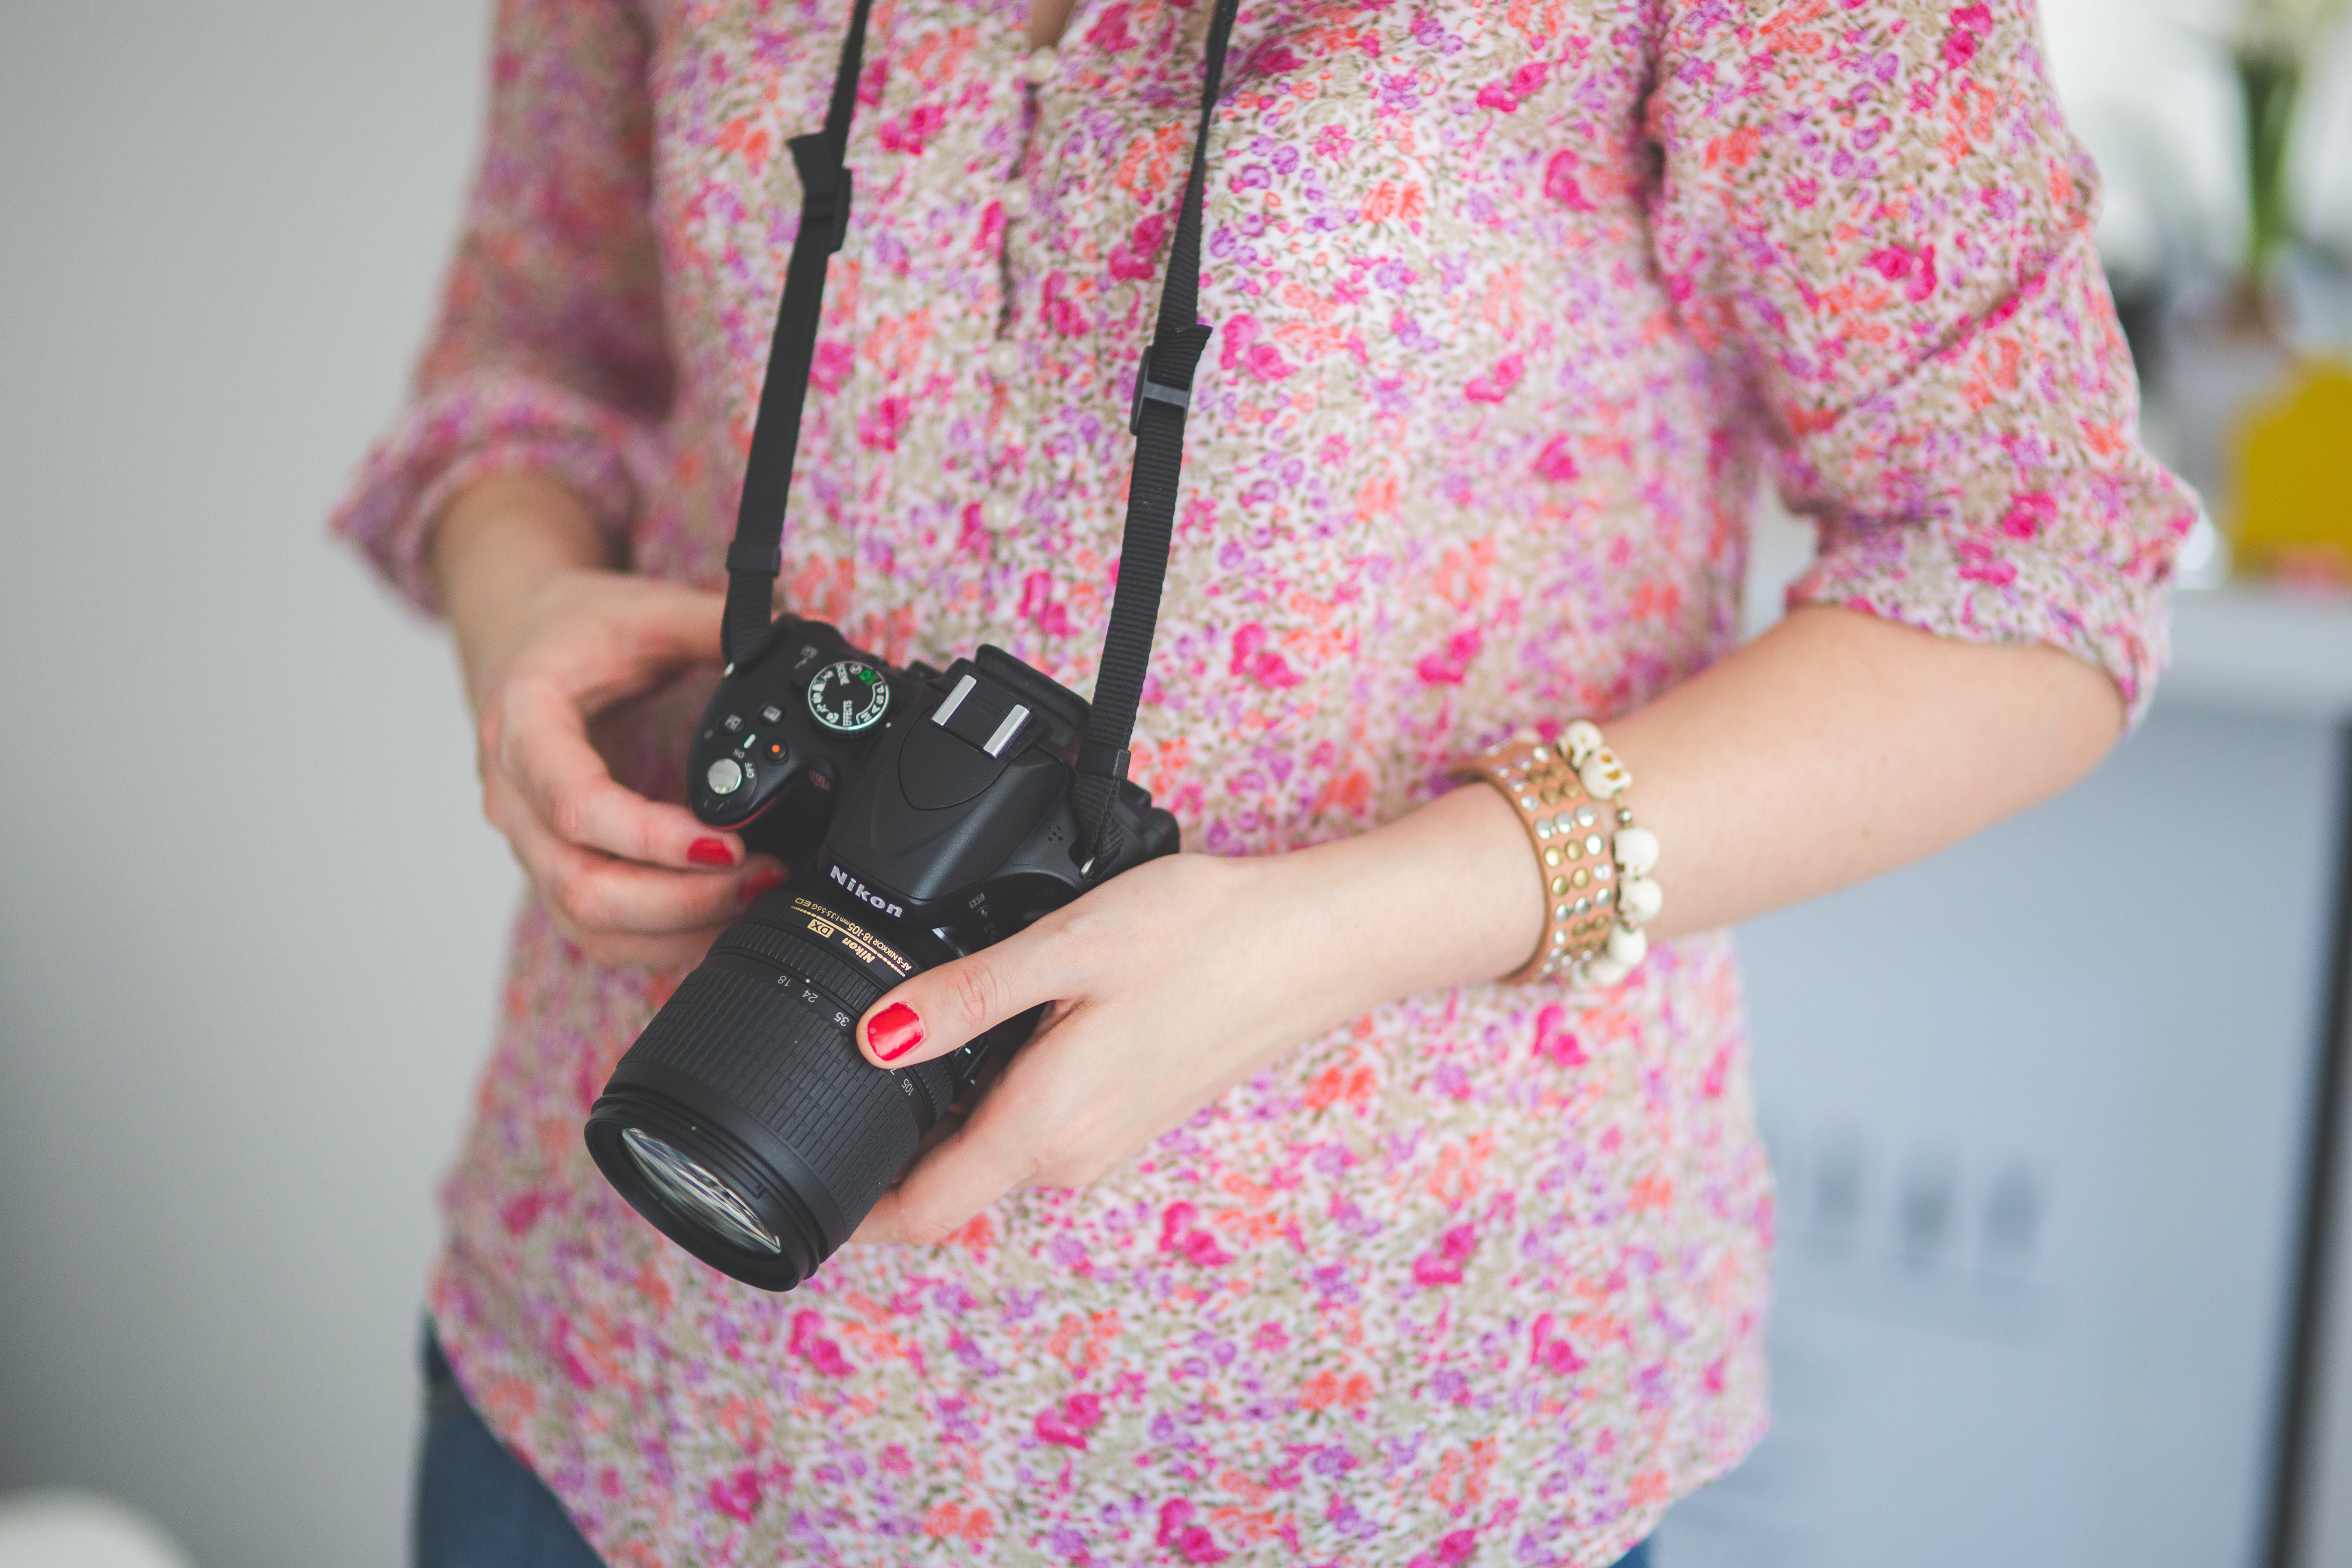 Female photographer holding a dslr camera